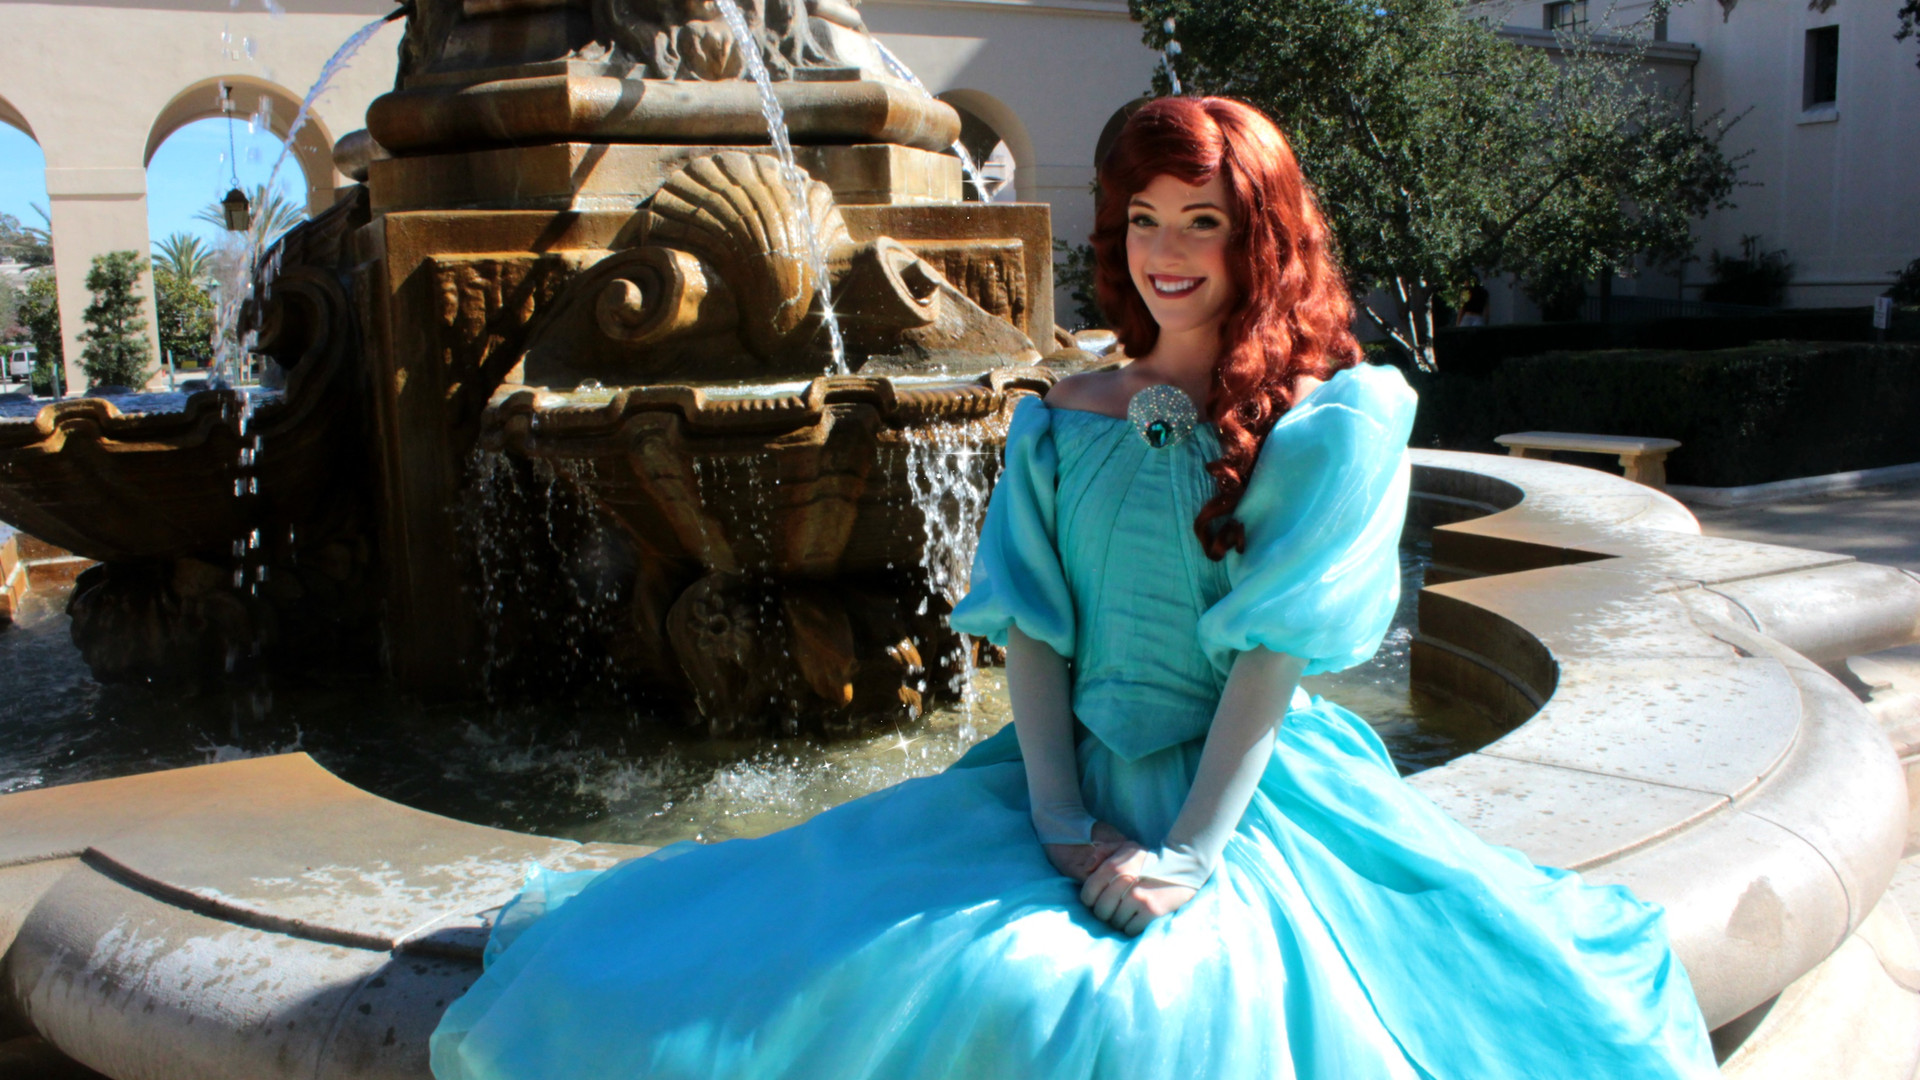 ariel the little mermaid princess party character los angeles